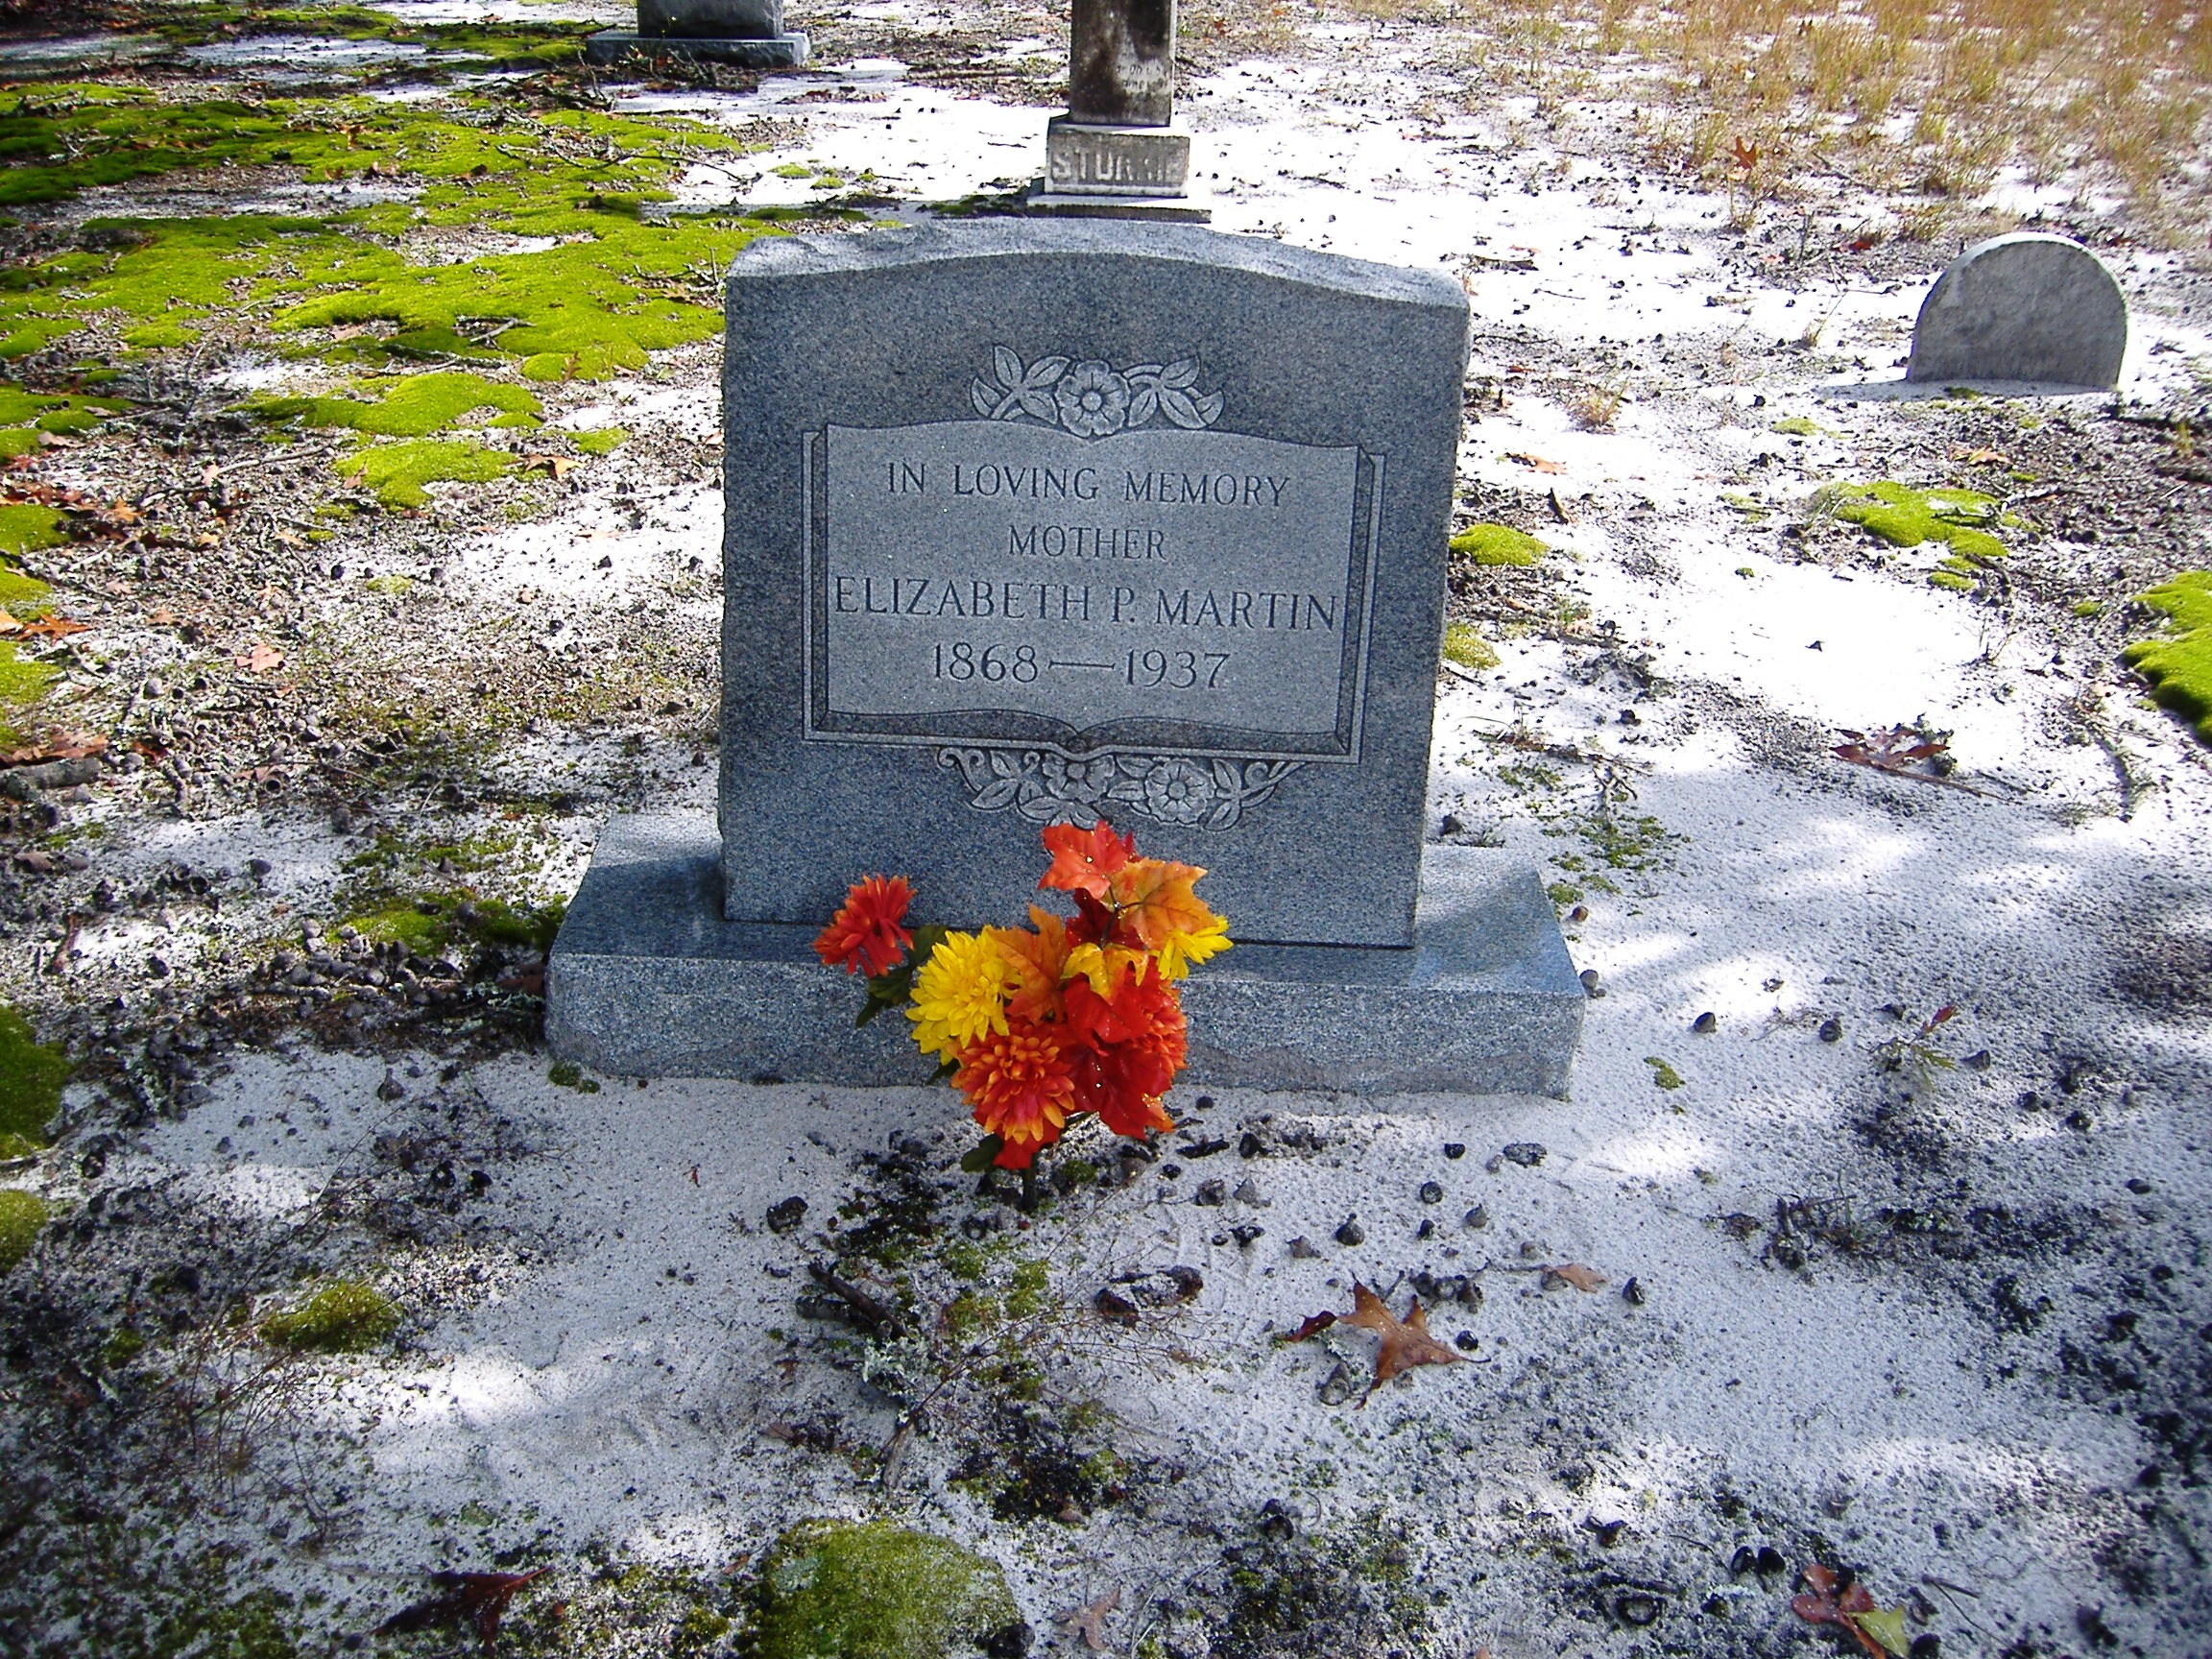 color photo of an upright marble headstone with red and orange flowers on the ground in front of it